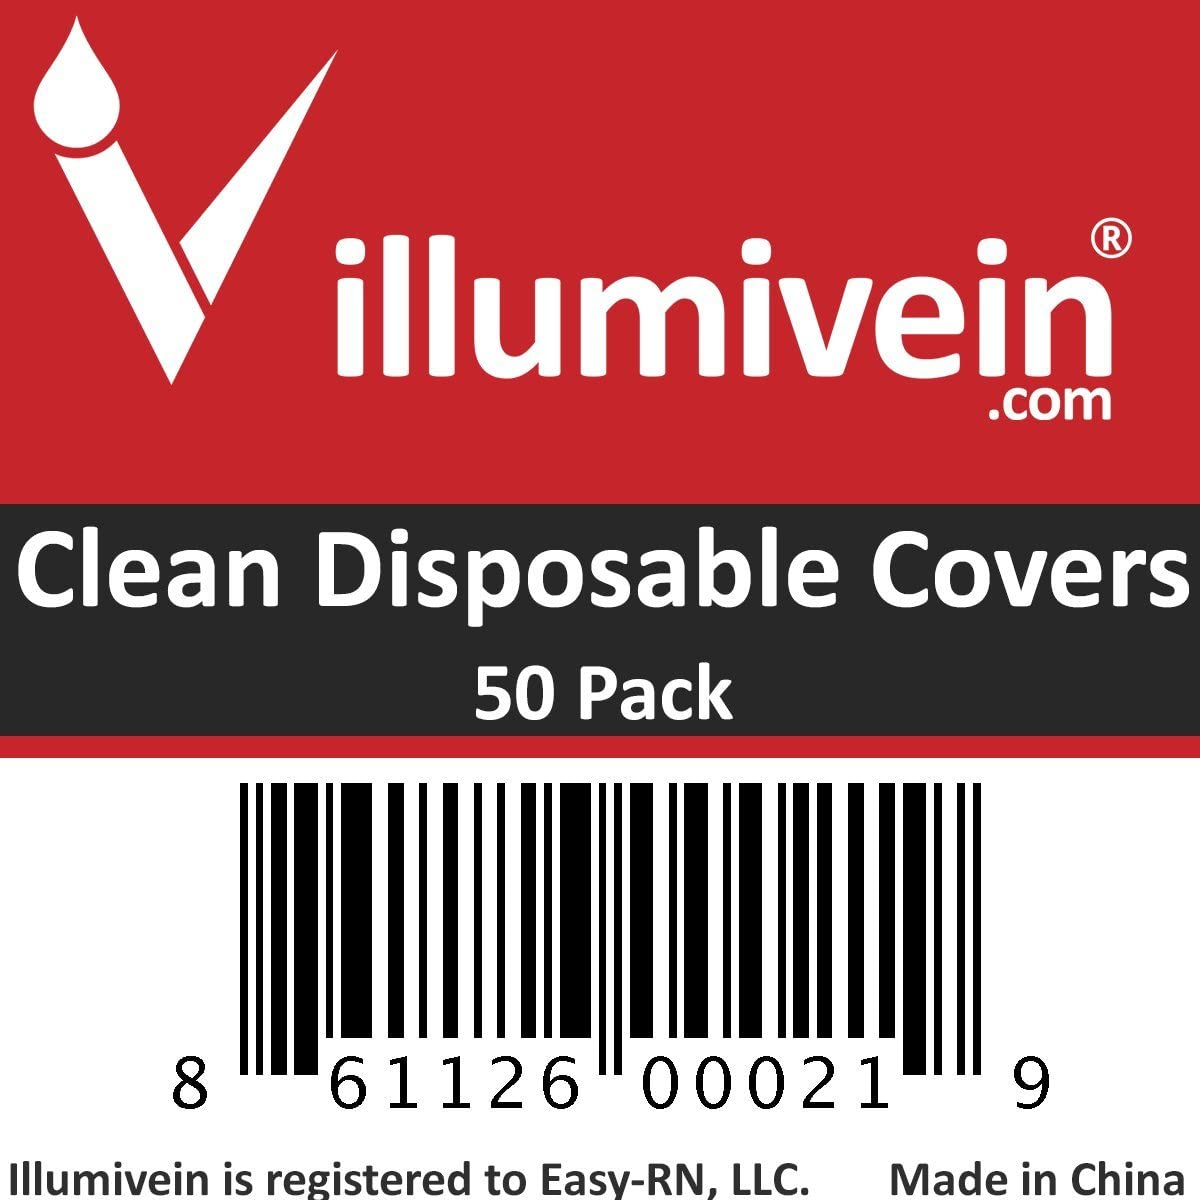 Illumivein® Disposable Covers 50 Pack